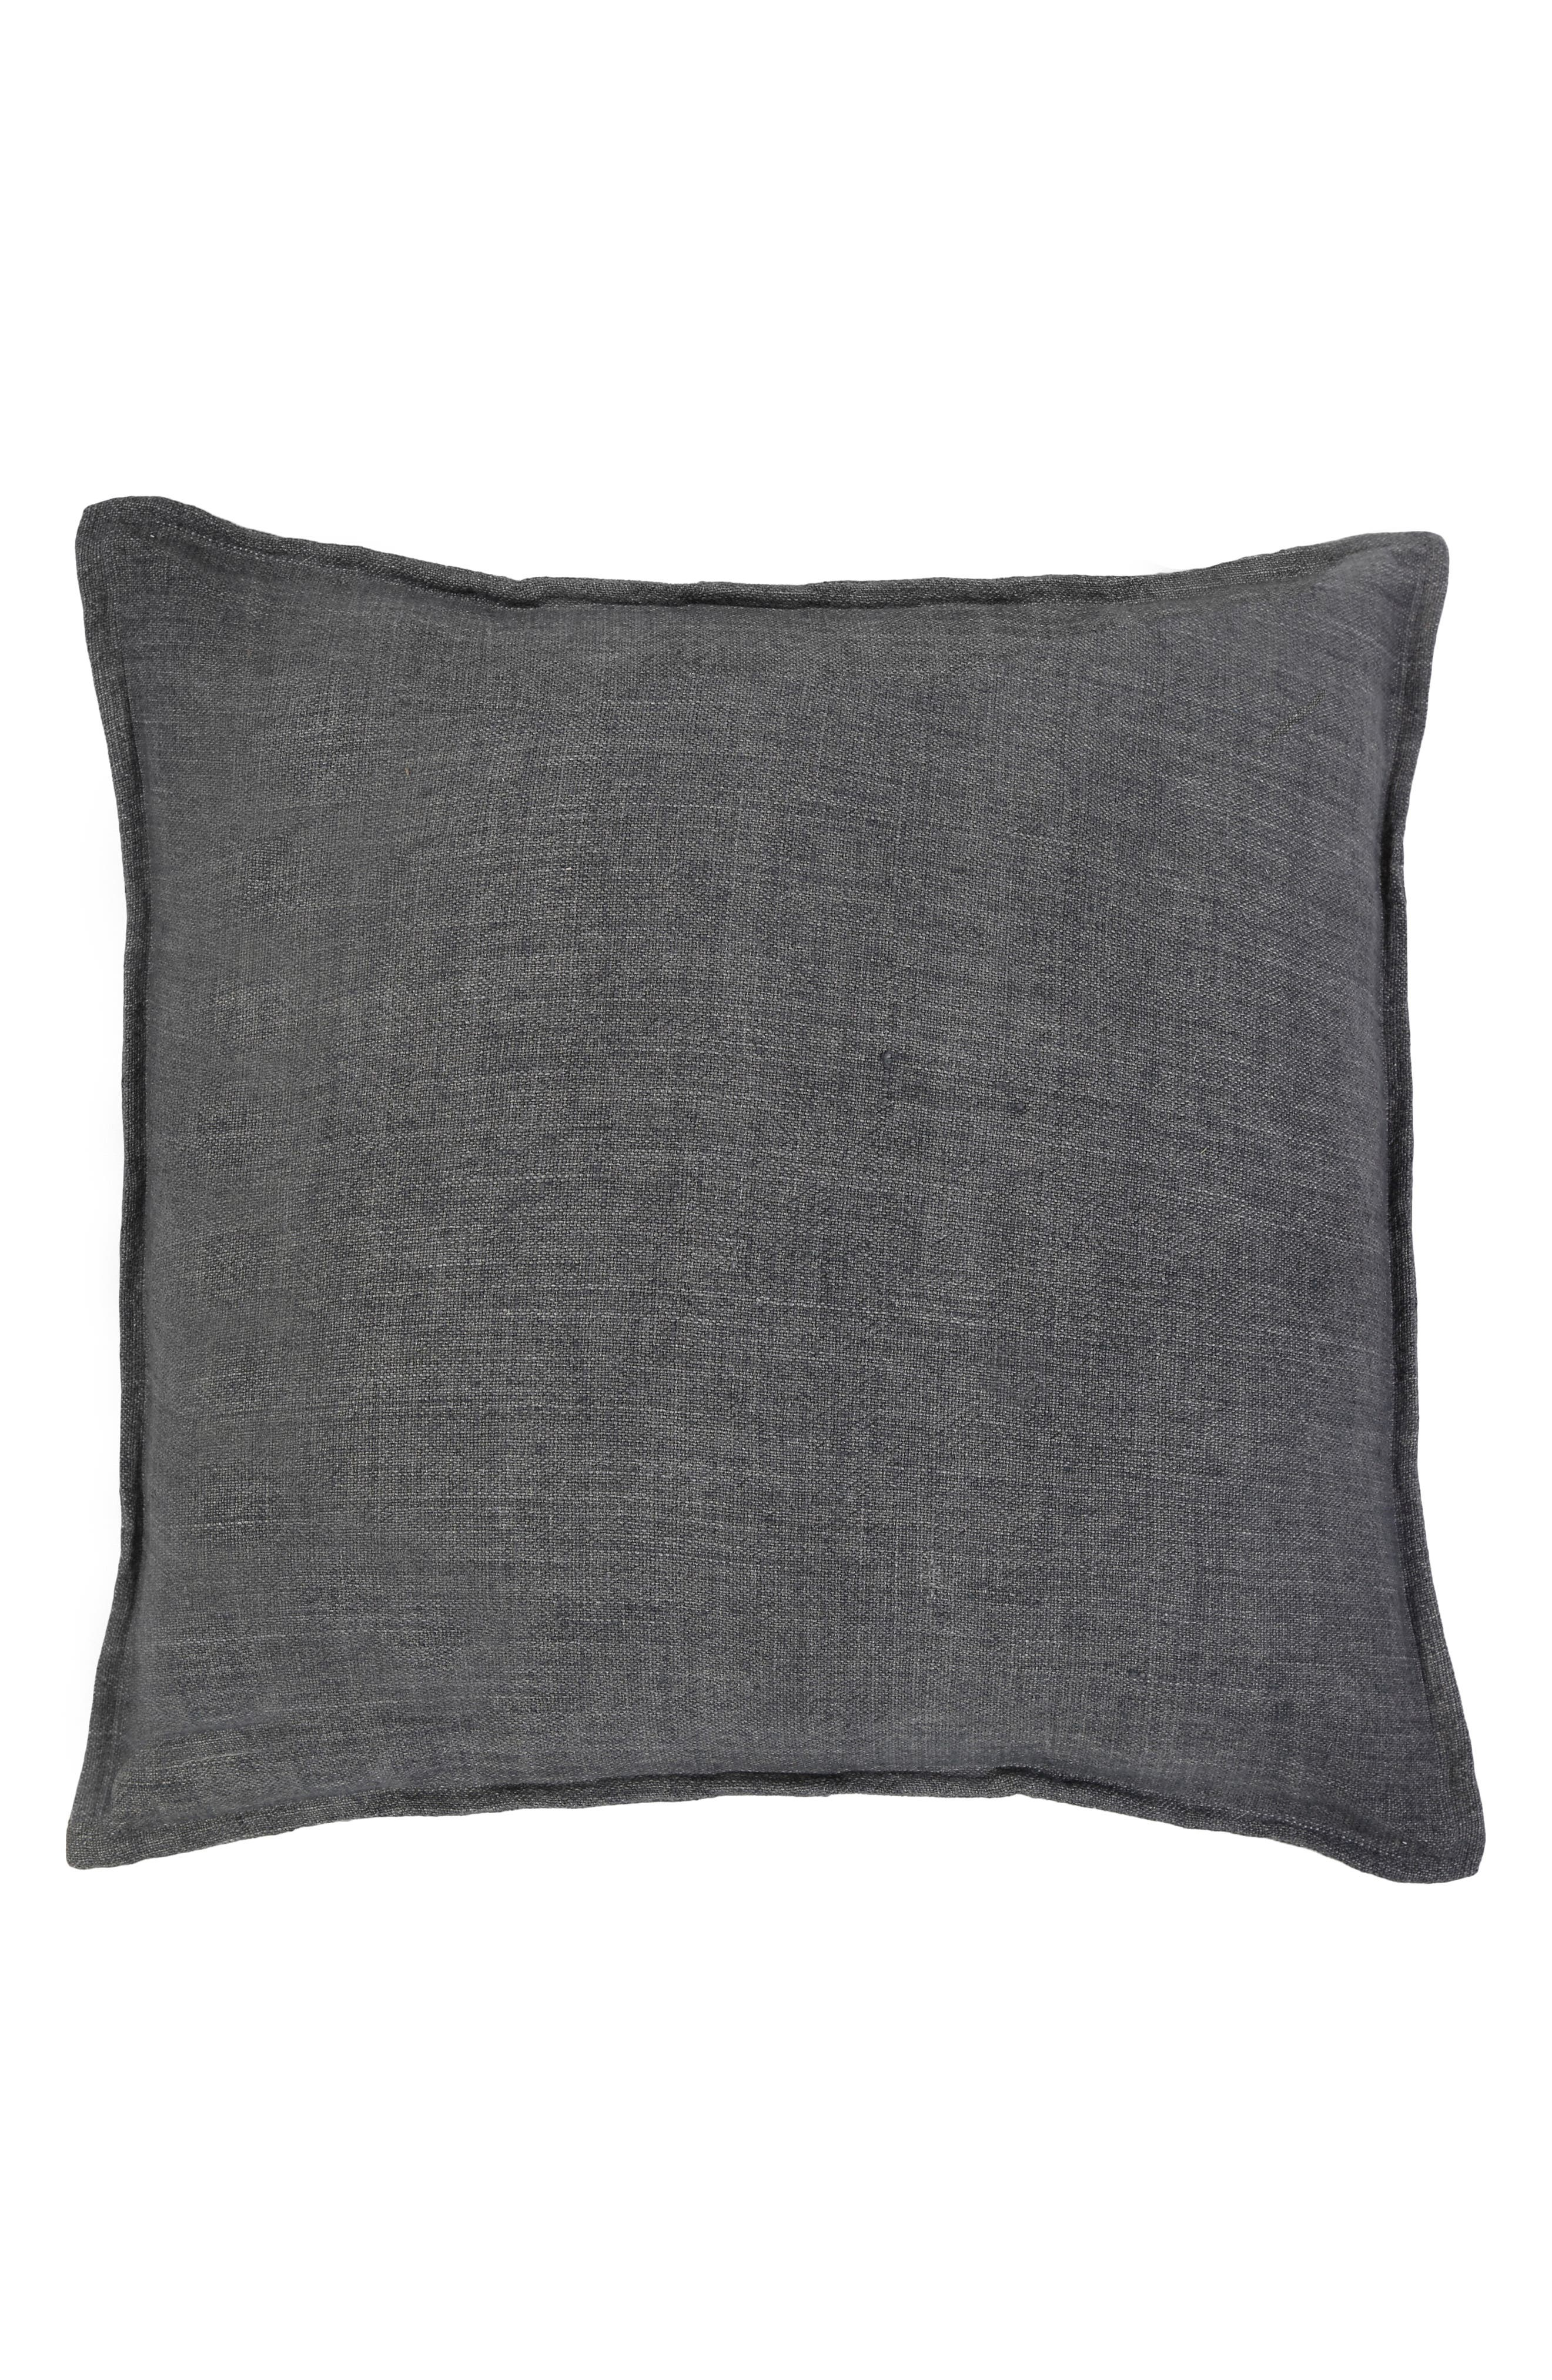 POM POM AT HOME, Montauk Large Euro Accent Pillow, Main thumbnail 1, color, CHARCOAL